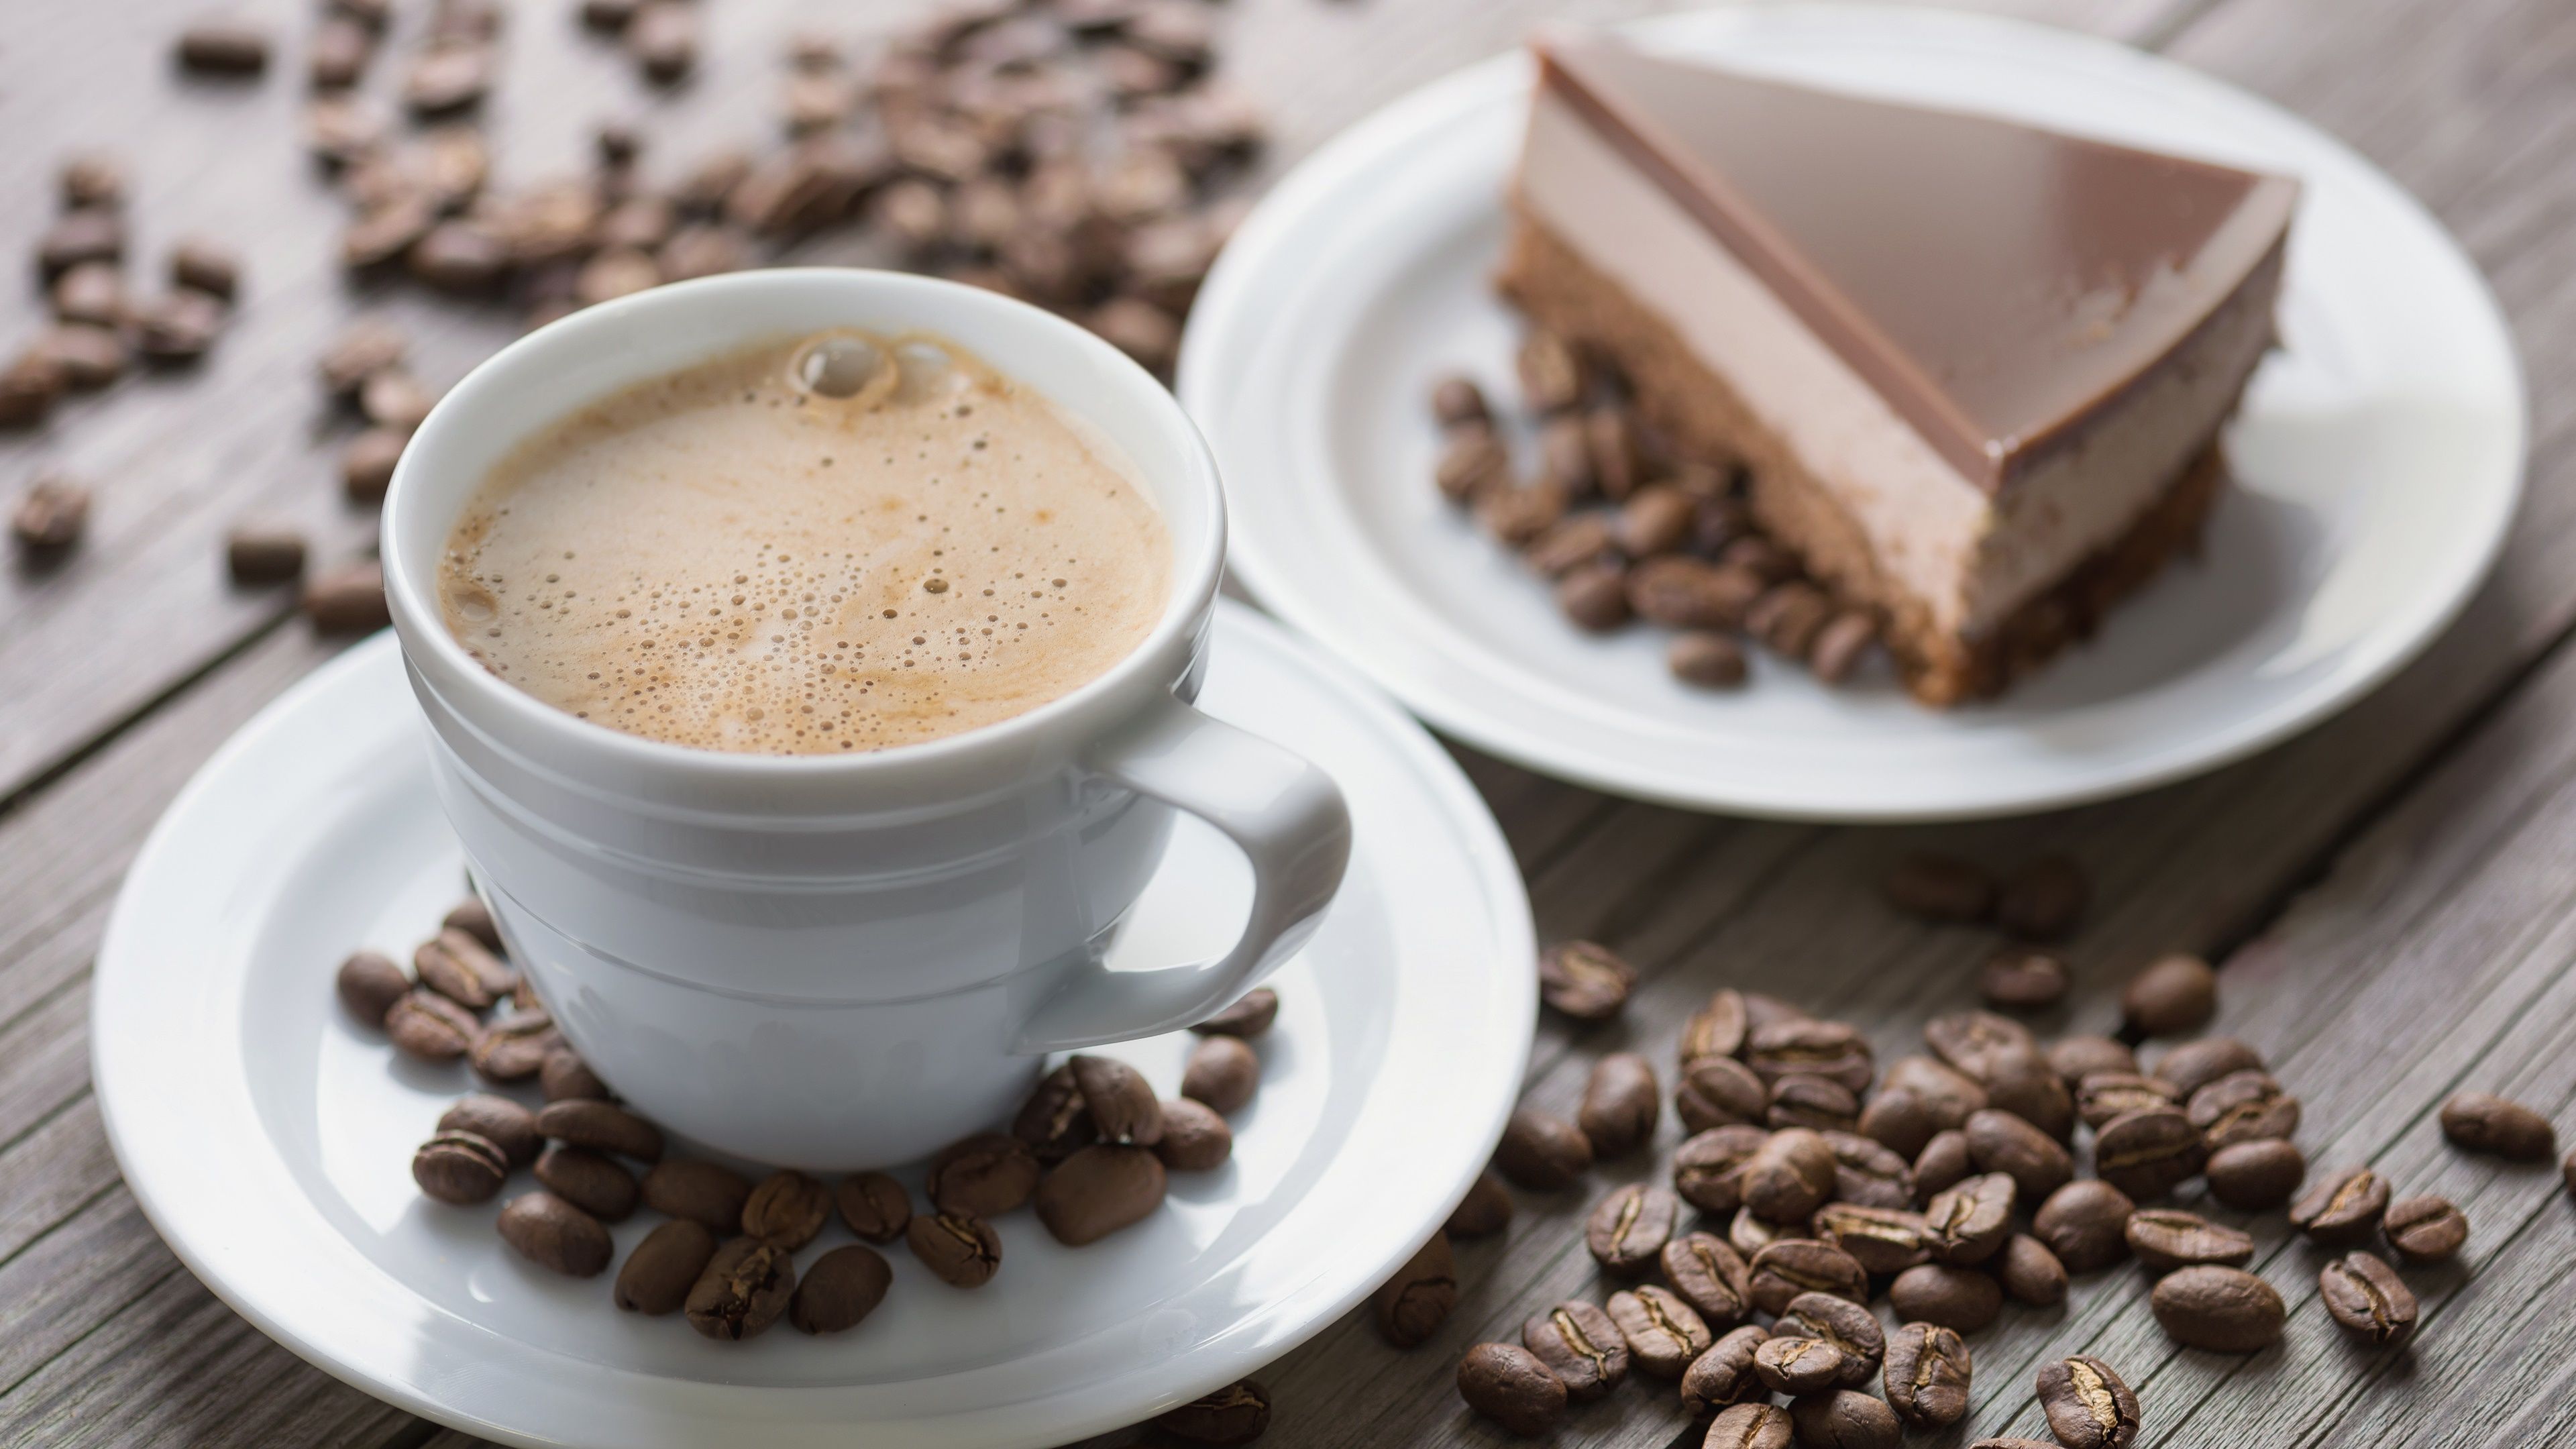 Coffe with chocolate cake wallpaper